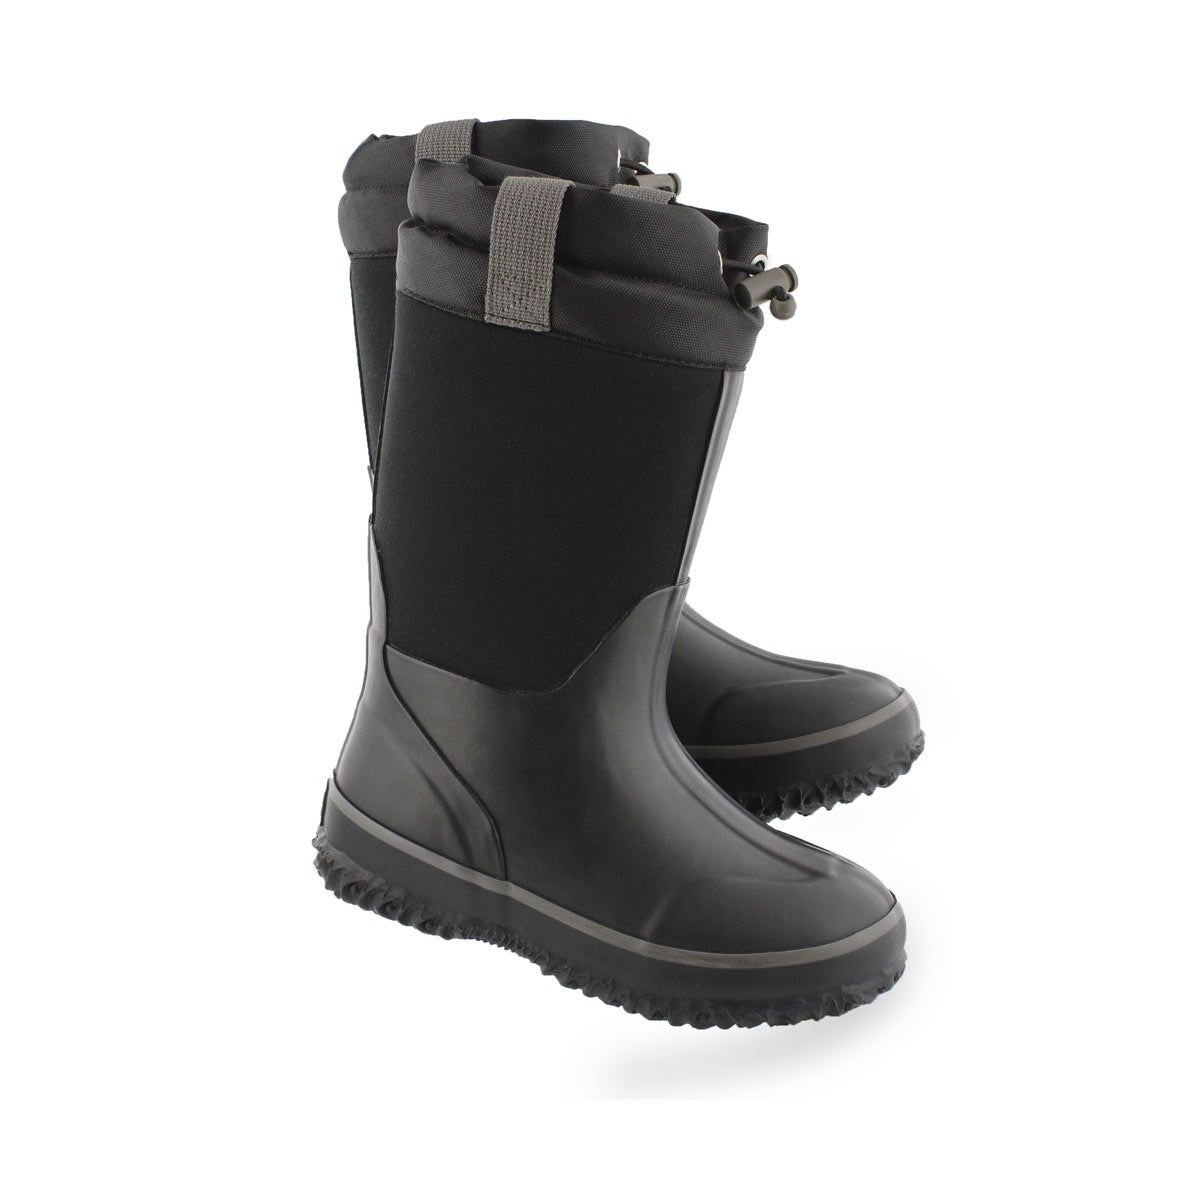 Kids' KNIGHT black waterproof pull on winter boots